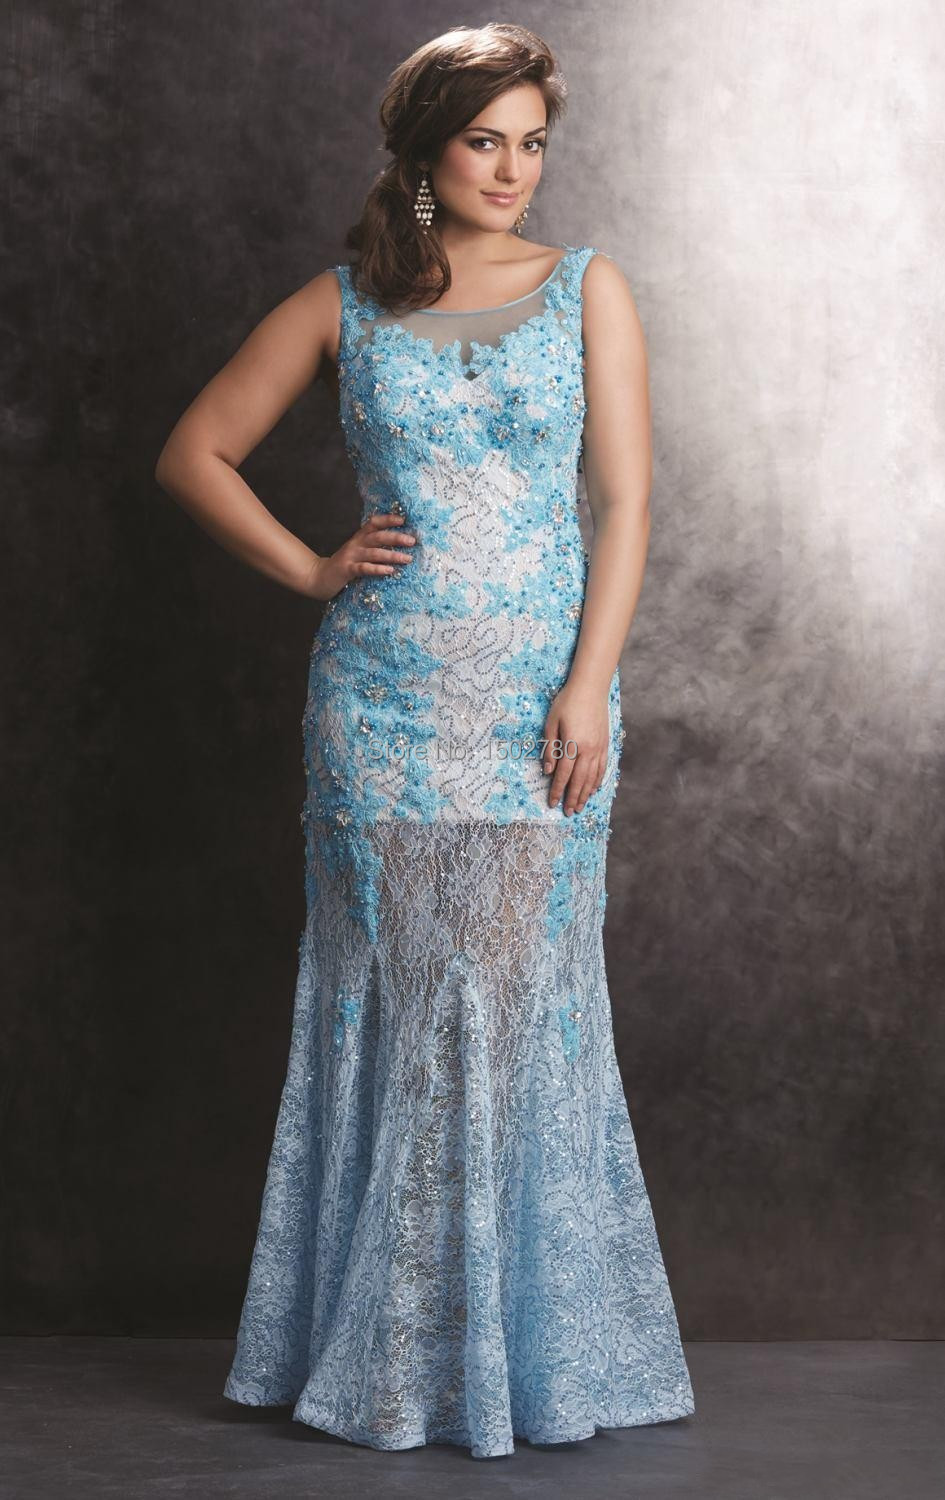 Blue Appliques Maxi Prom Dresses For Chubby Girls Low Back ...